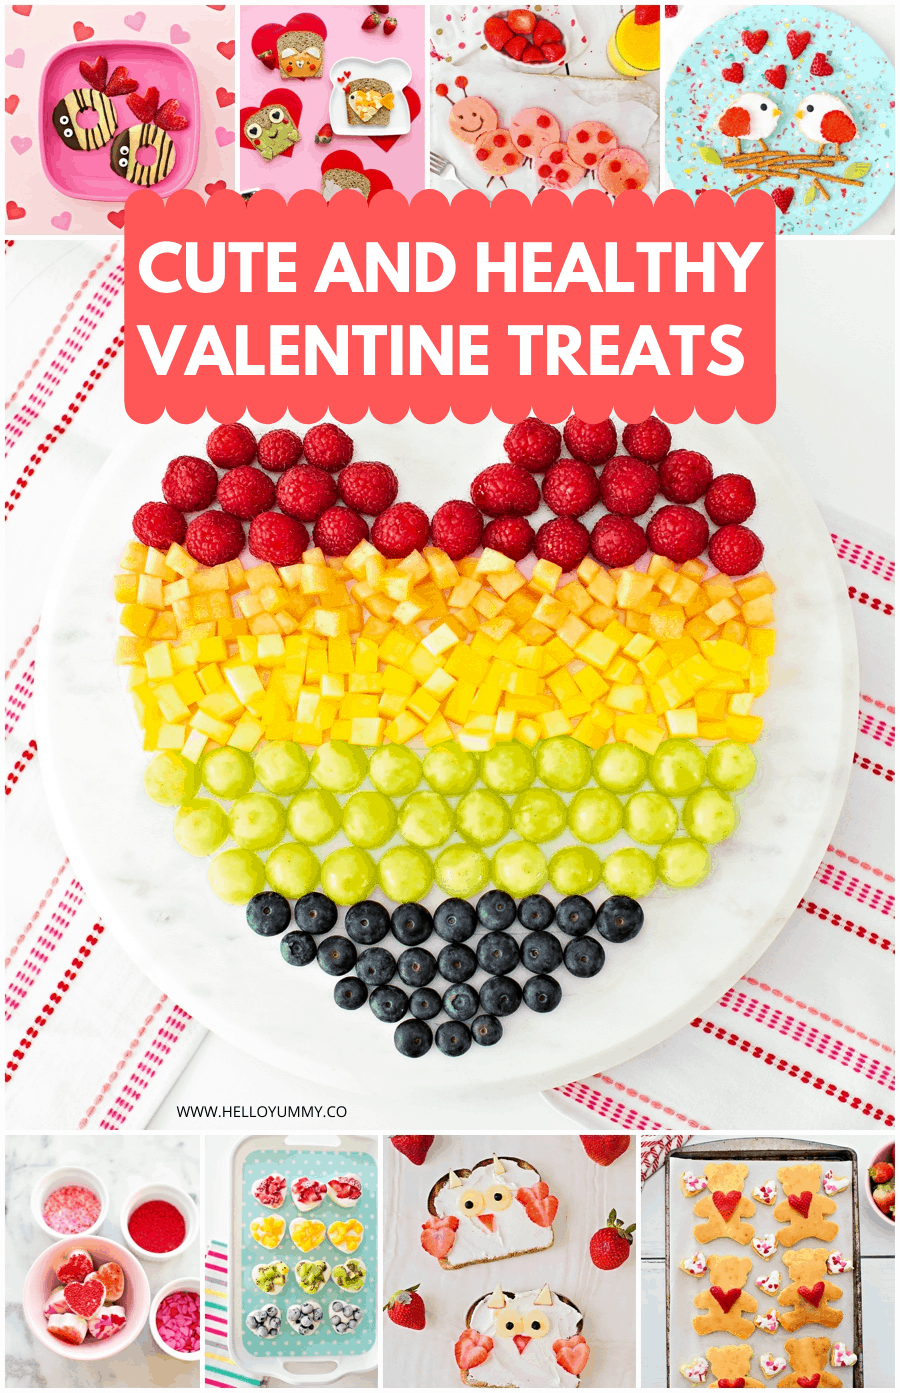 Cute and Easy Healthy Valentine Treats for Kids. Collage image.